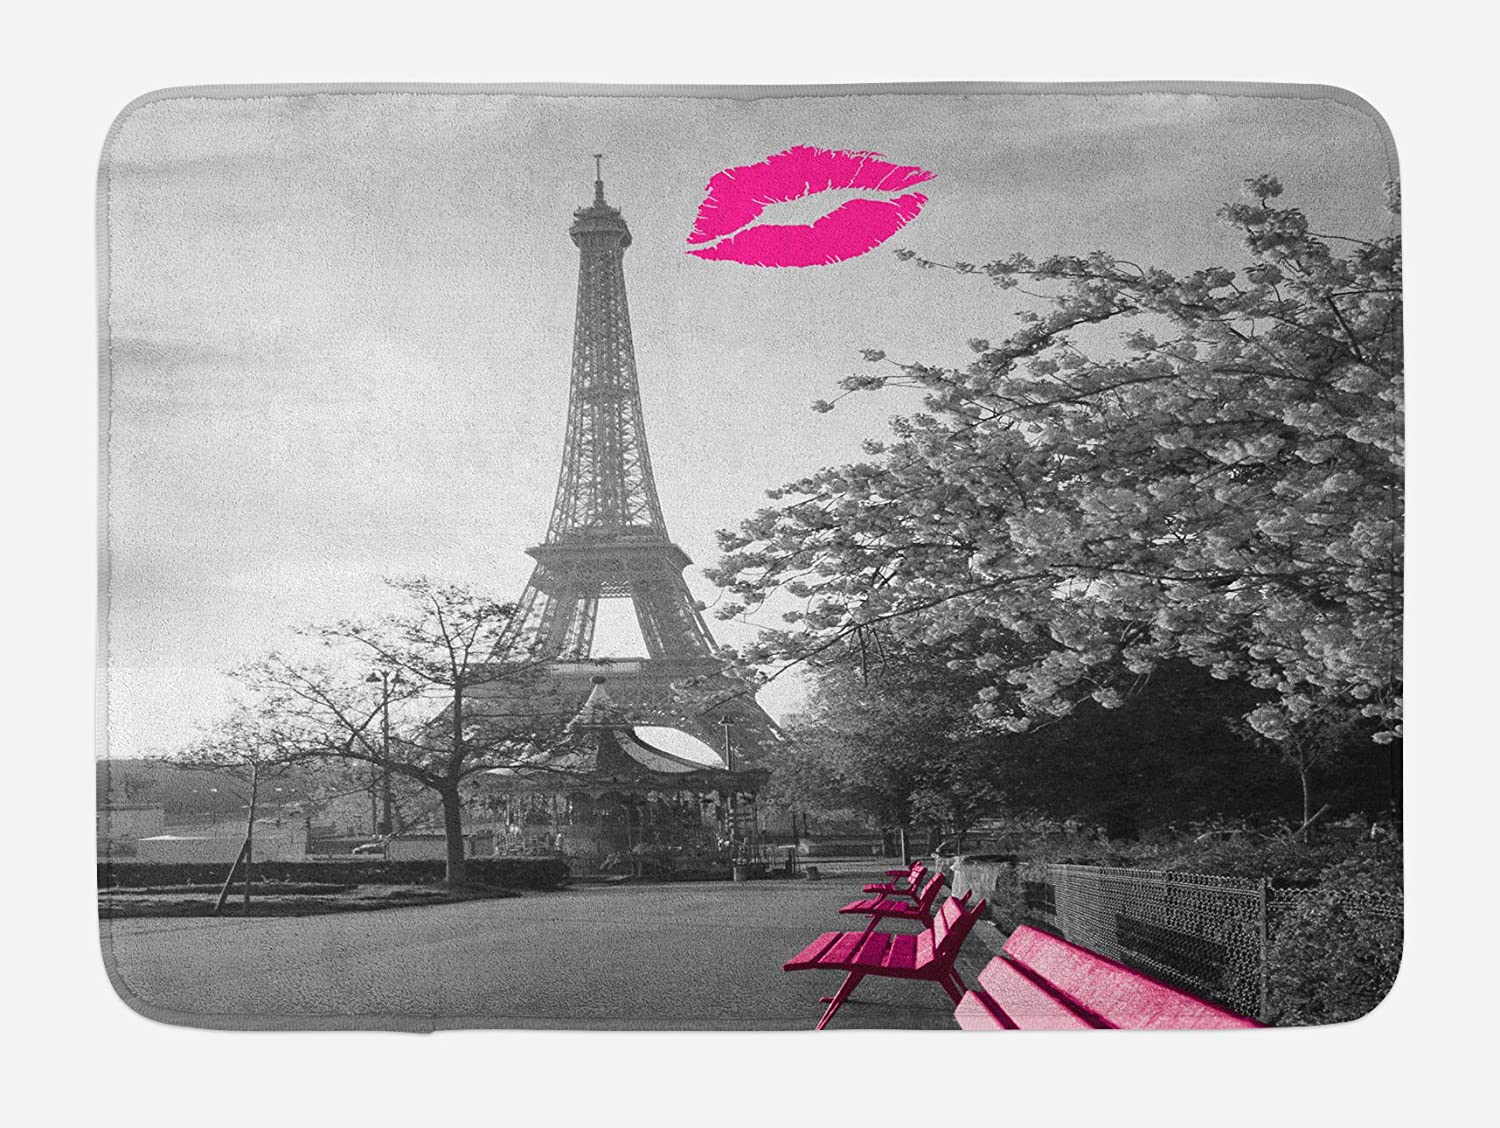 Ambesonne Paris Bath Mat, Romantic Monochrome Photo of Eiffel Tower with Pink Benches and a Kiss Mark, Plush Bathroom Decor Mat with Non Slip Backing, 29.5 W X 17.5 L Inches, Black White Hot Pink